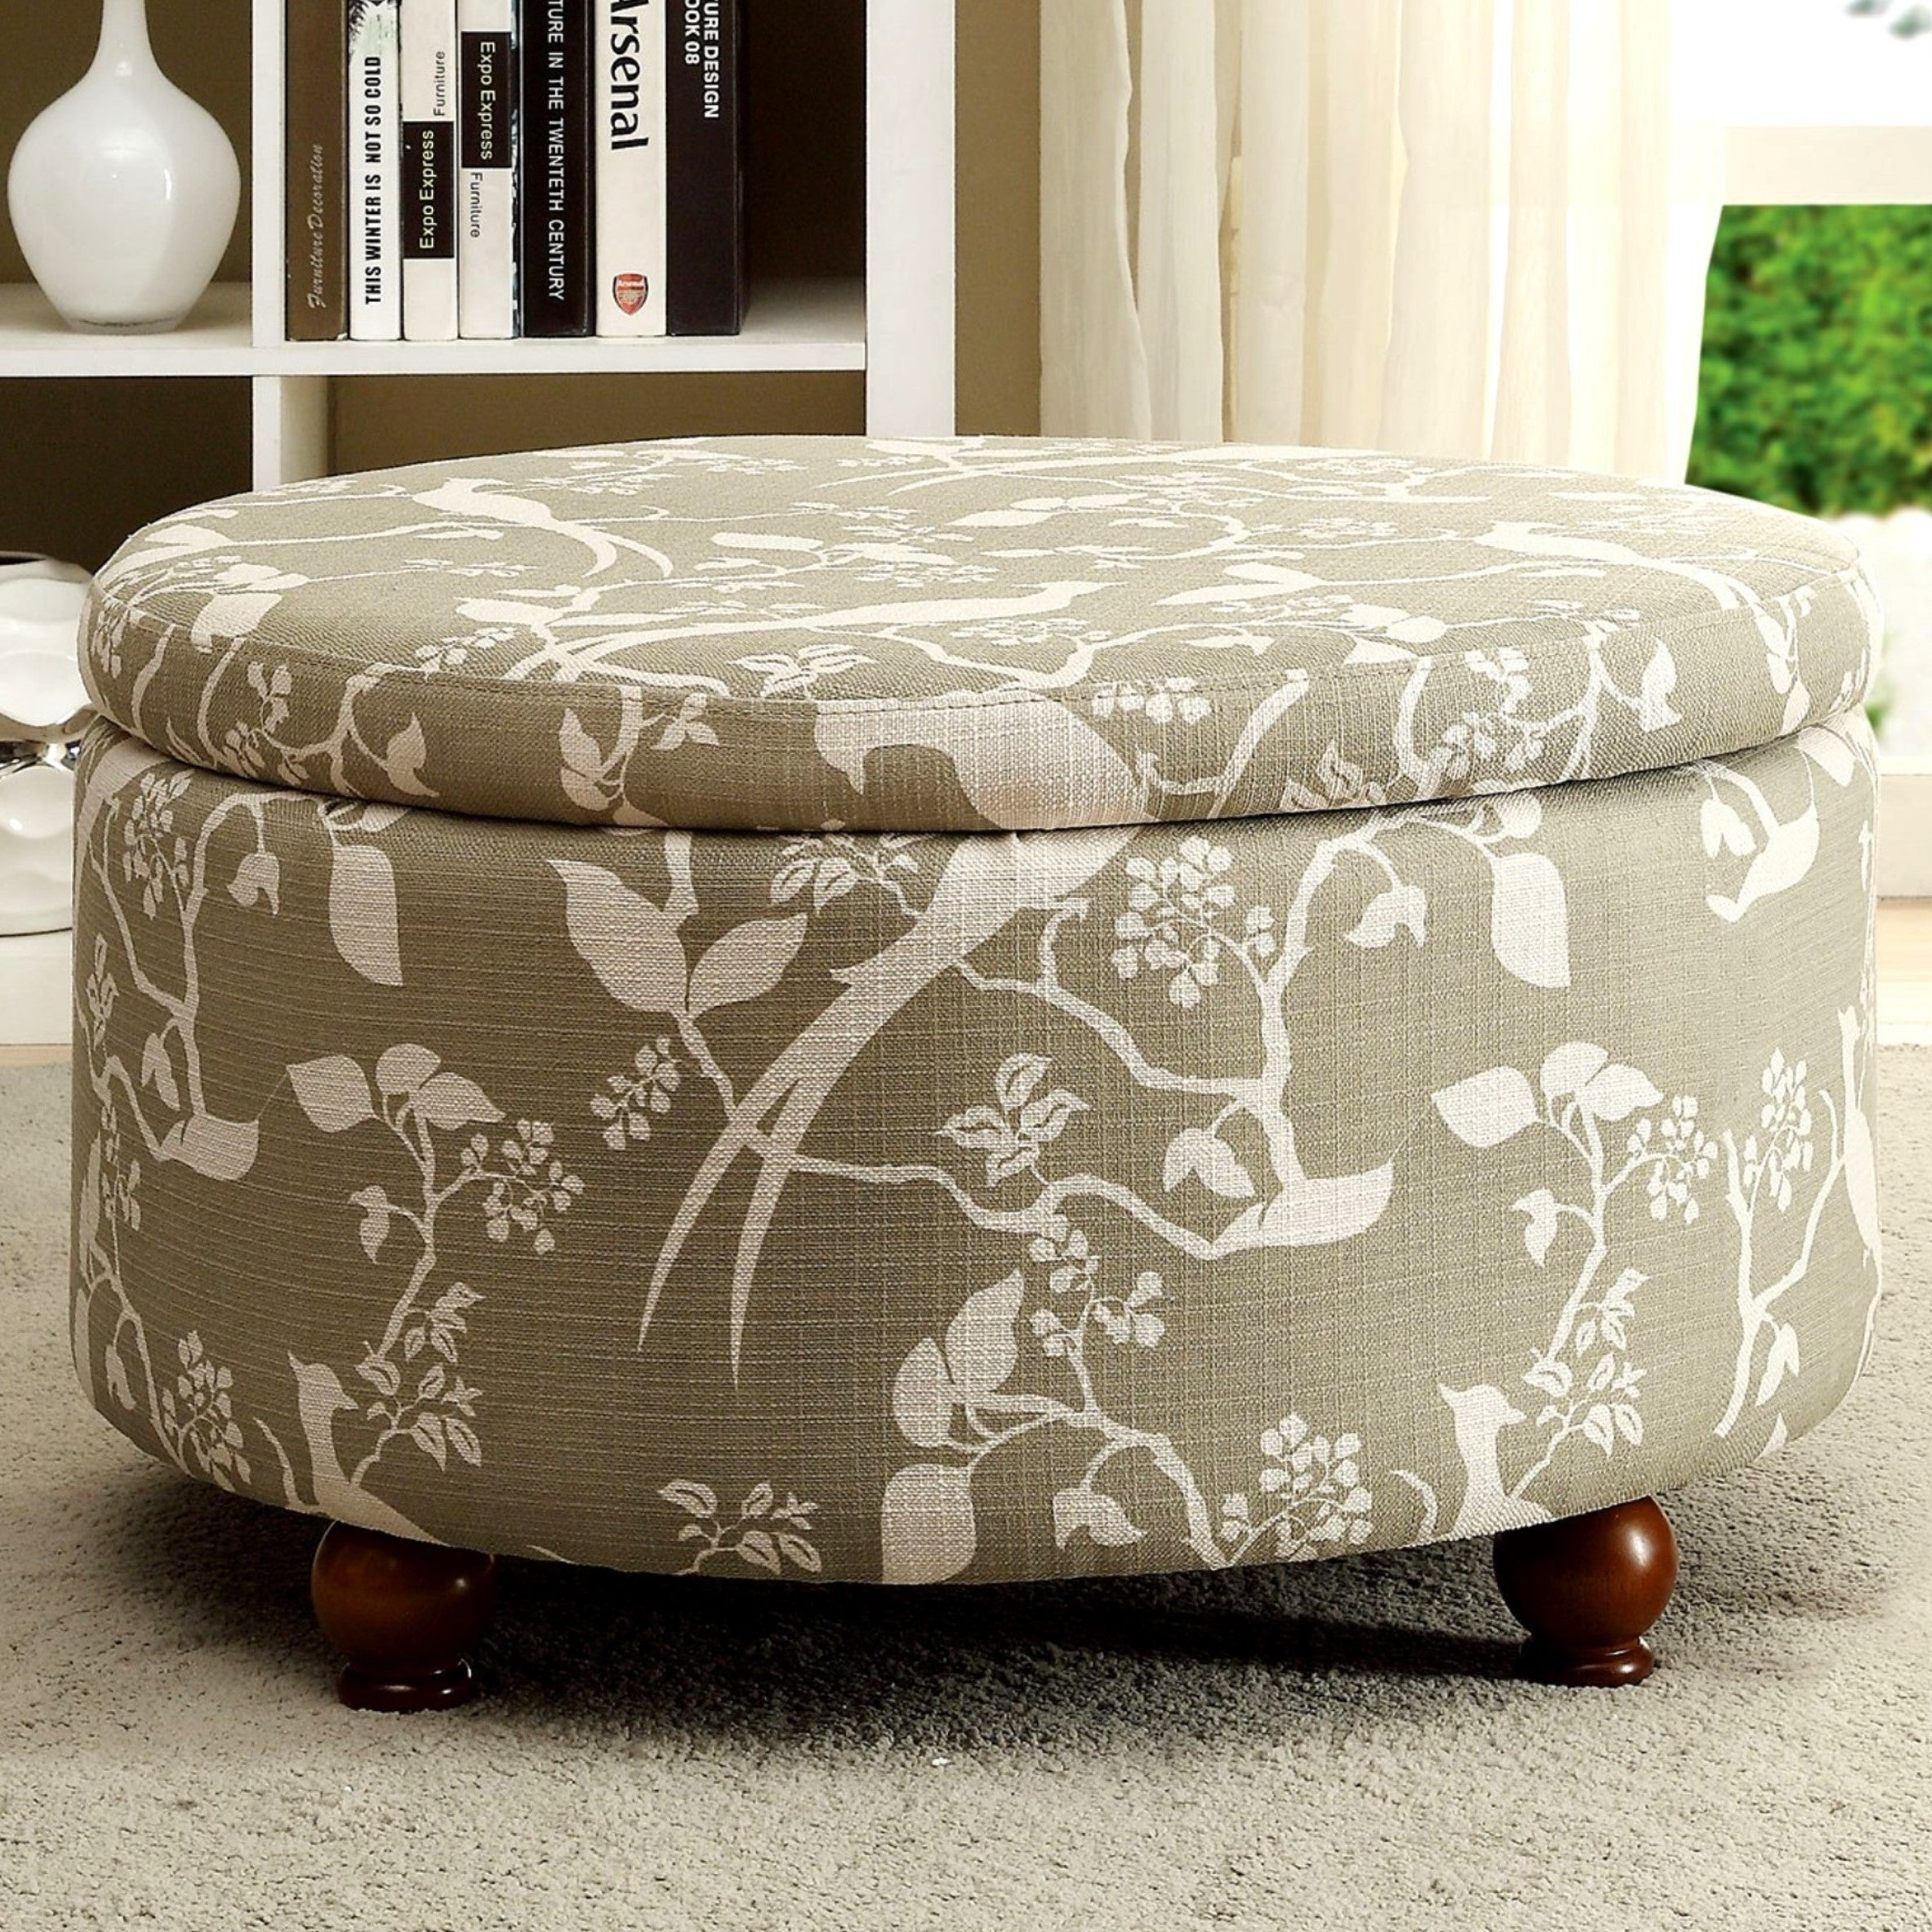 living century mid best rooms chairs armchair ottoman most home design set for modern reading comfortable cozy floral